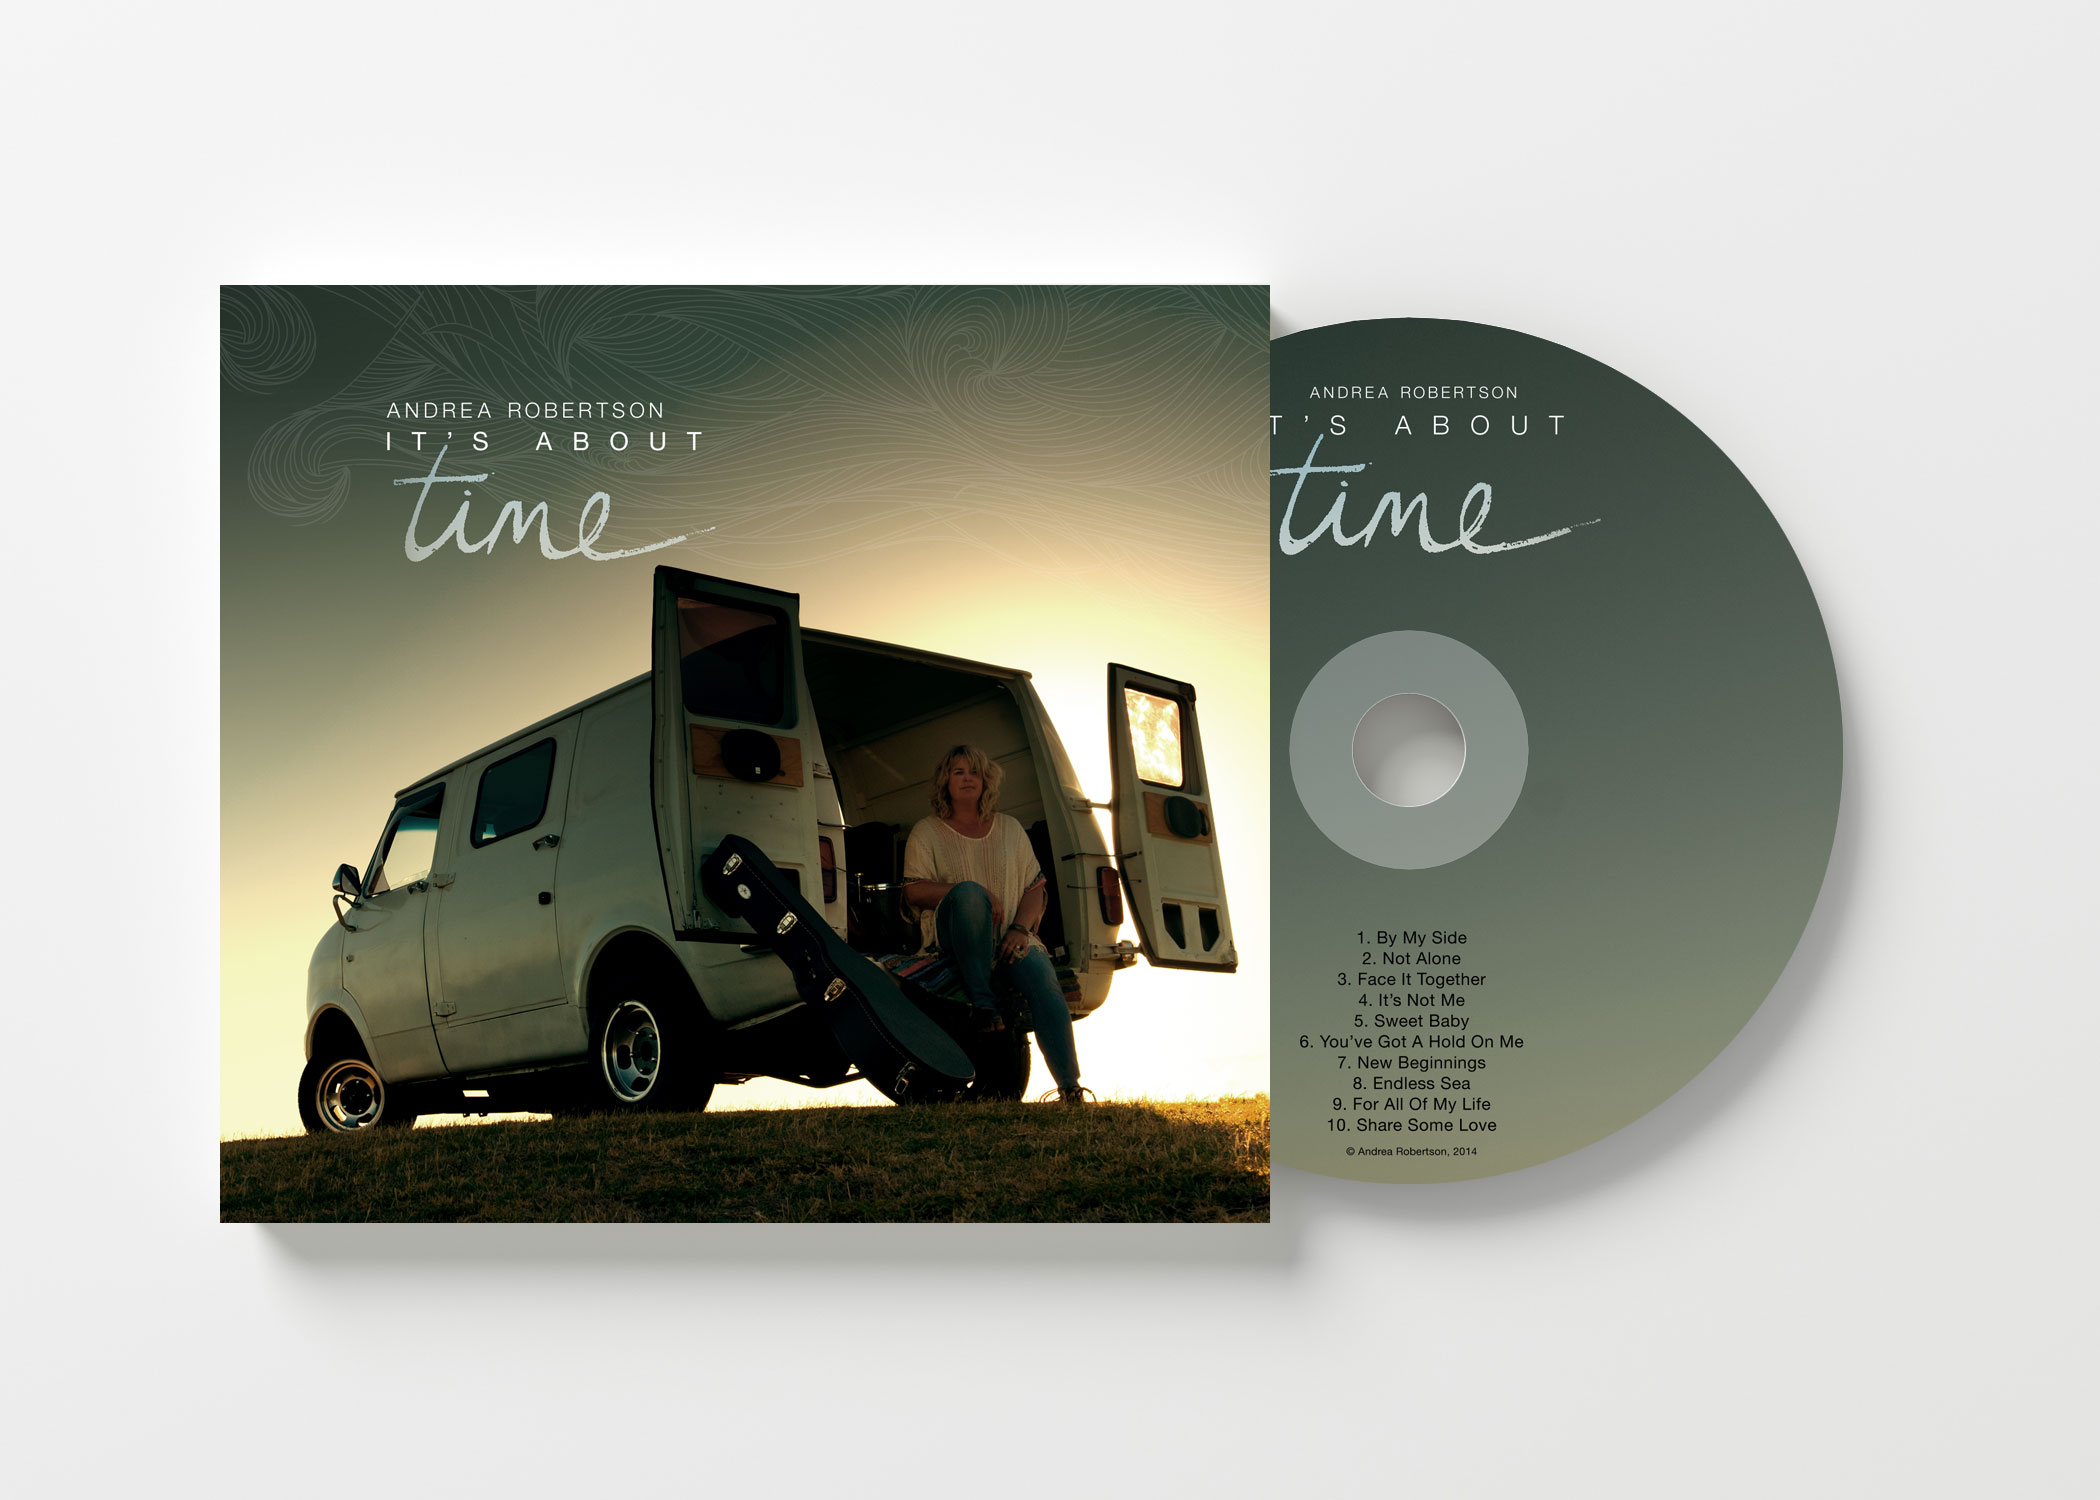 It's About Time    CD $20.00   The soulful debut independent release album from singer/songwriter Andrea Robertson. Featuring 10 original tracks that make this CD a well-balanced blend of rocky, toe-tapping numbers matched with heart-warming ballads and tunes that make you want to sing along - an album well worth adding to your collection.   Now available as a Digital Download for only $14.99 via CD Baby - just click on the link below and we'll take you there.....     http://cdbaby.com/cd/andrearobertson